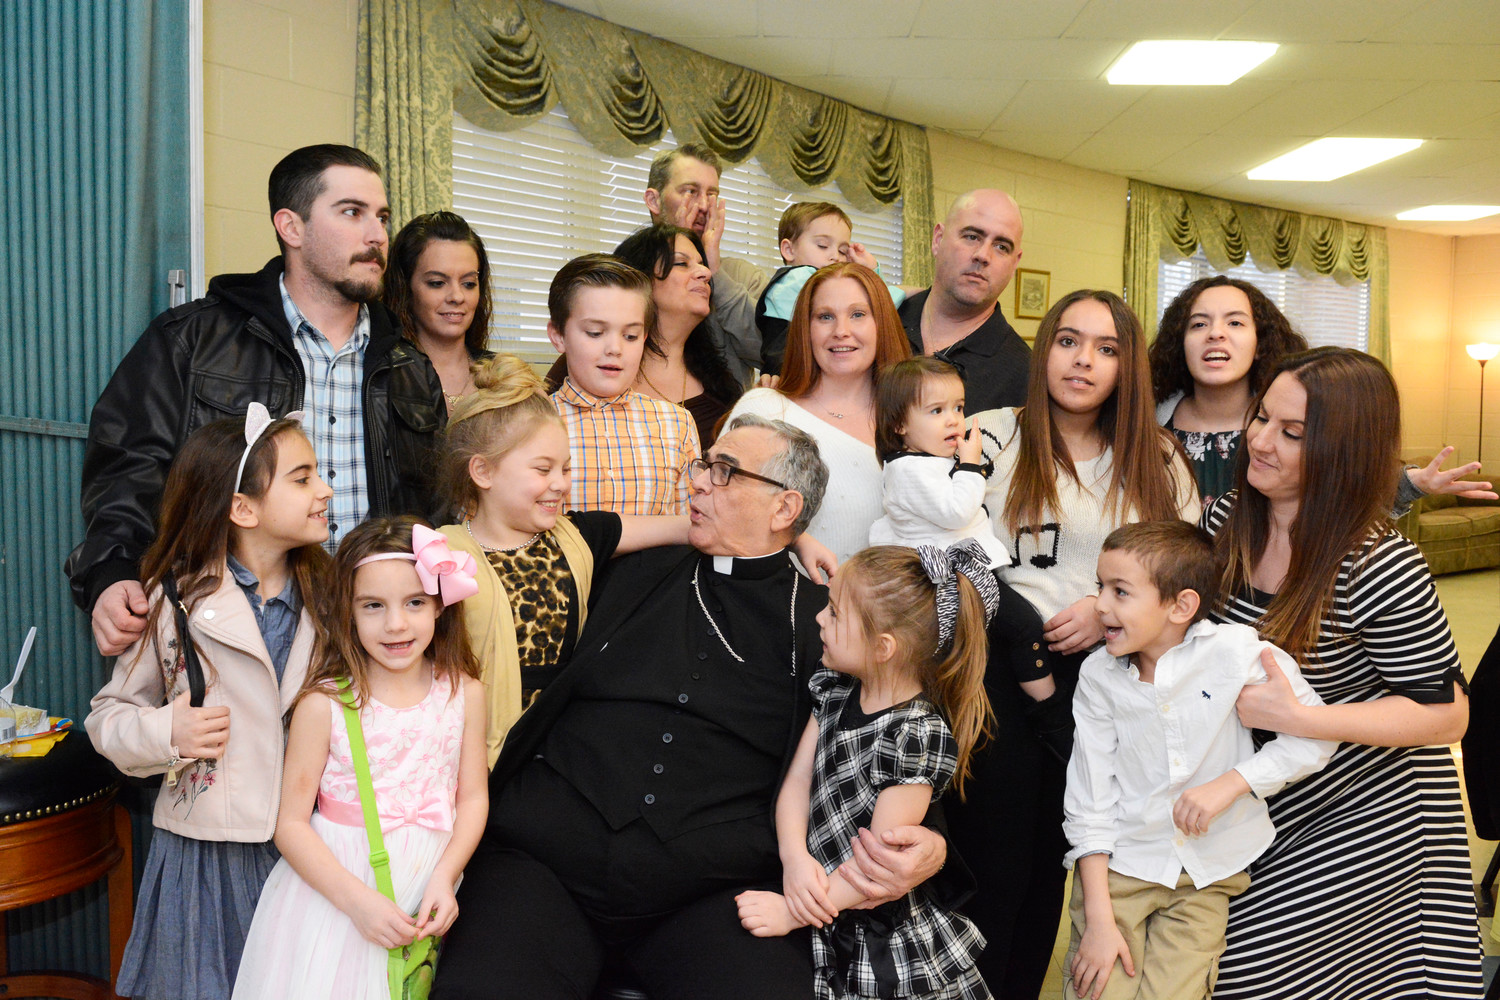 Relatives of Bishop Lagonegro make memories as they gather at the party.